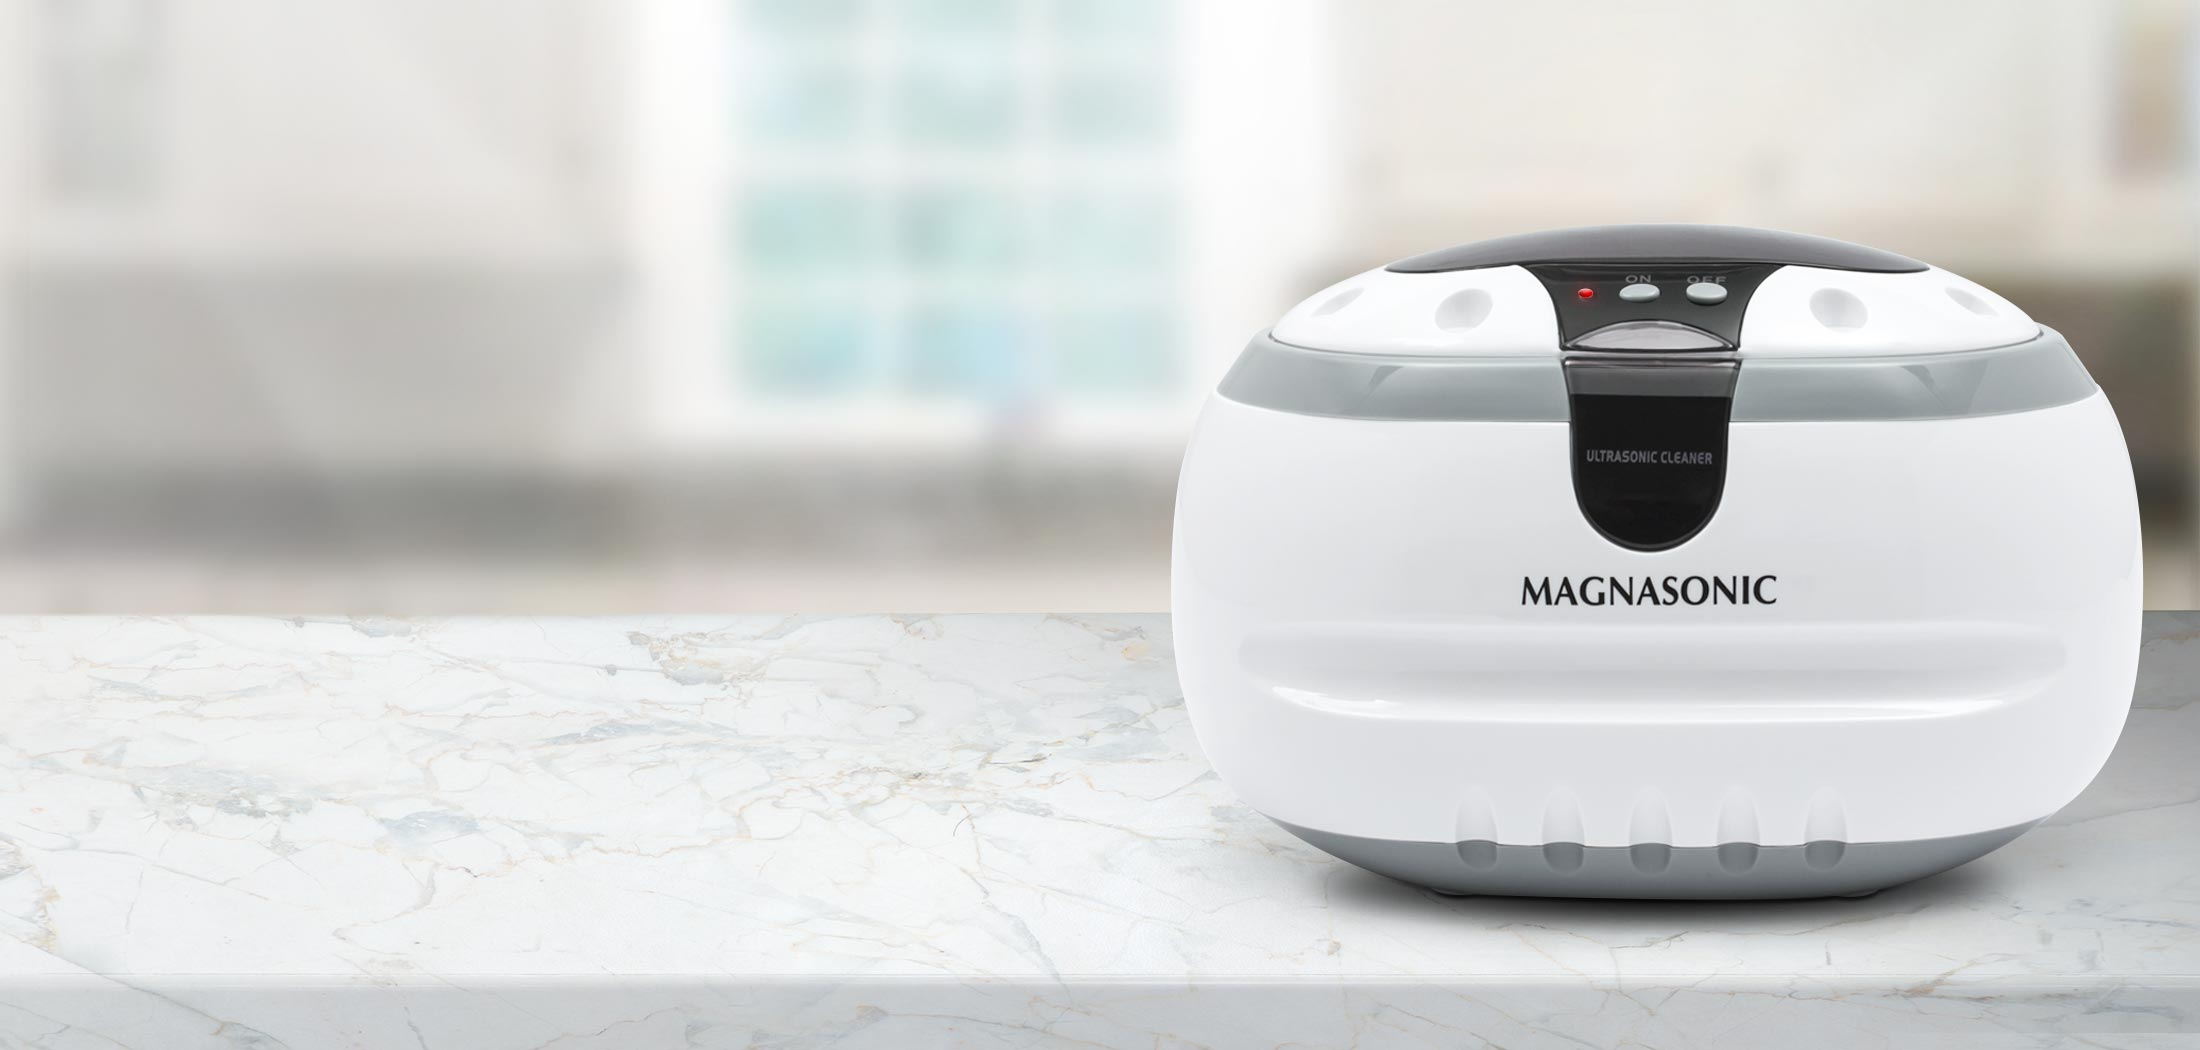 Image result for Magnasonic Professional Ultrasonic Polishing Jewelry Cleaner Machine for Cleaning Eyeglasses, Watches, Rings, Necklaces, Coins, Razors, Dentures, Comb